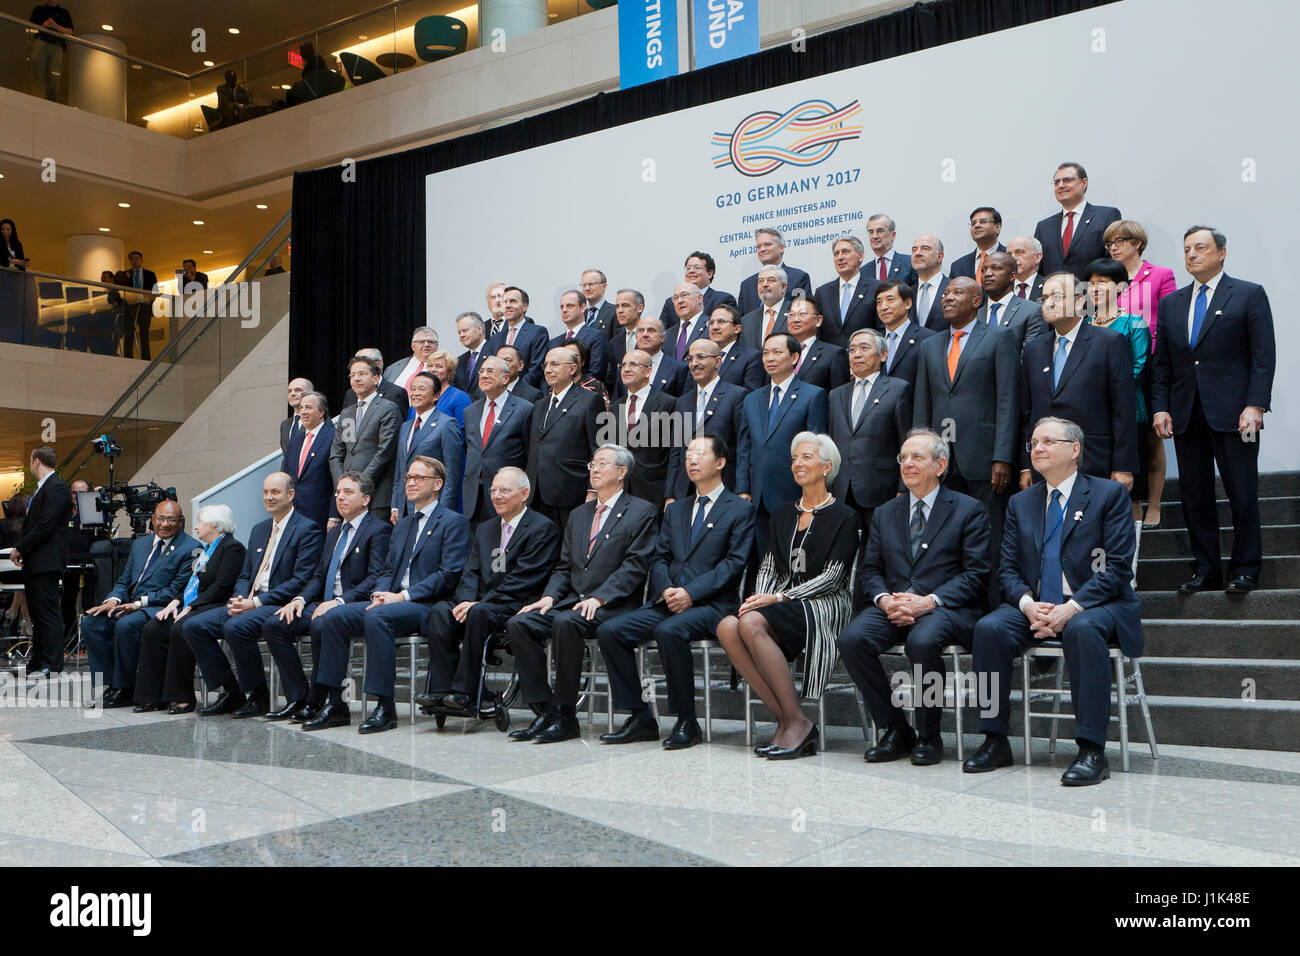 Washington, USA, 21st Apr. 2017:  G20 Finance Ministers and Central Bank Governors pose for a photo after meeting Stock Foto